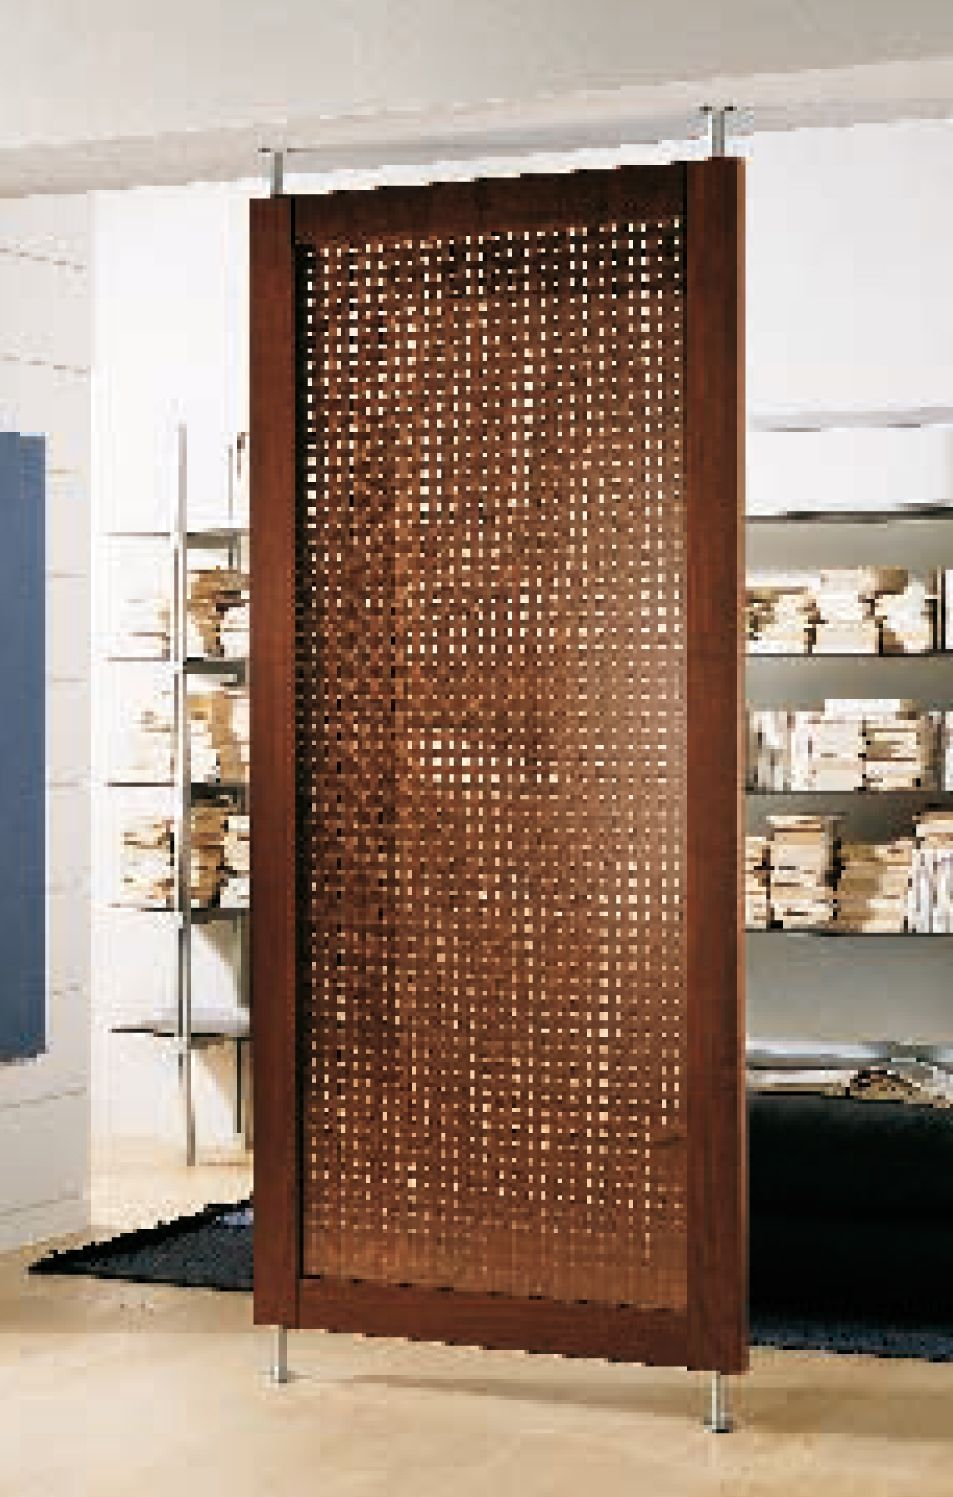 Pin By Belicia On Decor Amour Room Divider Diy Room Divider